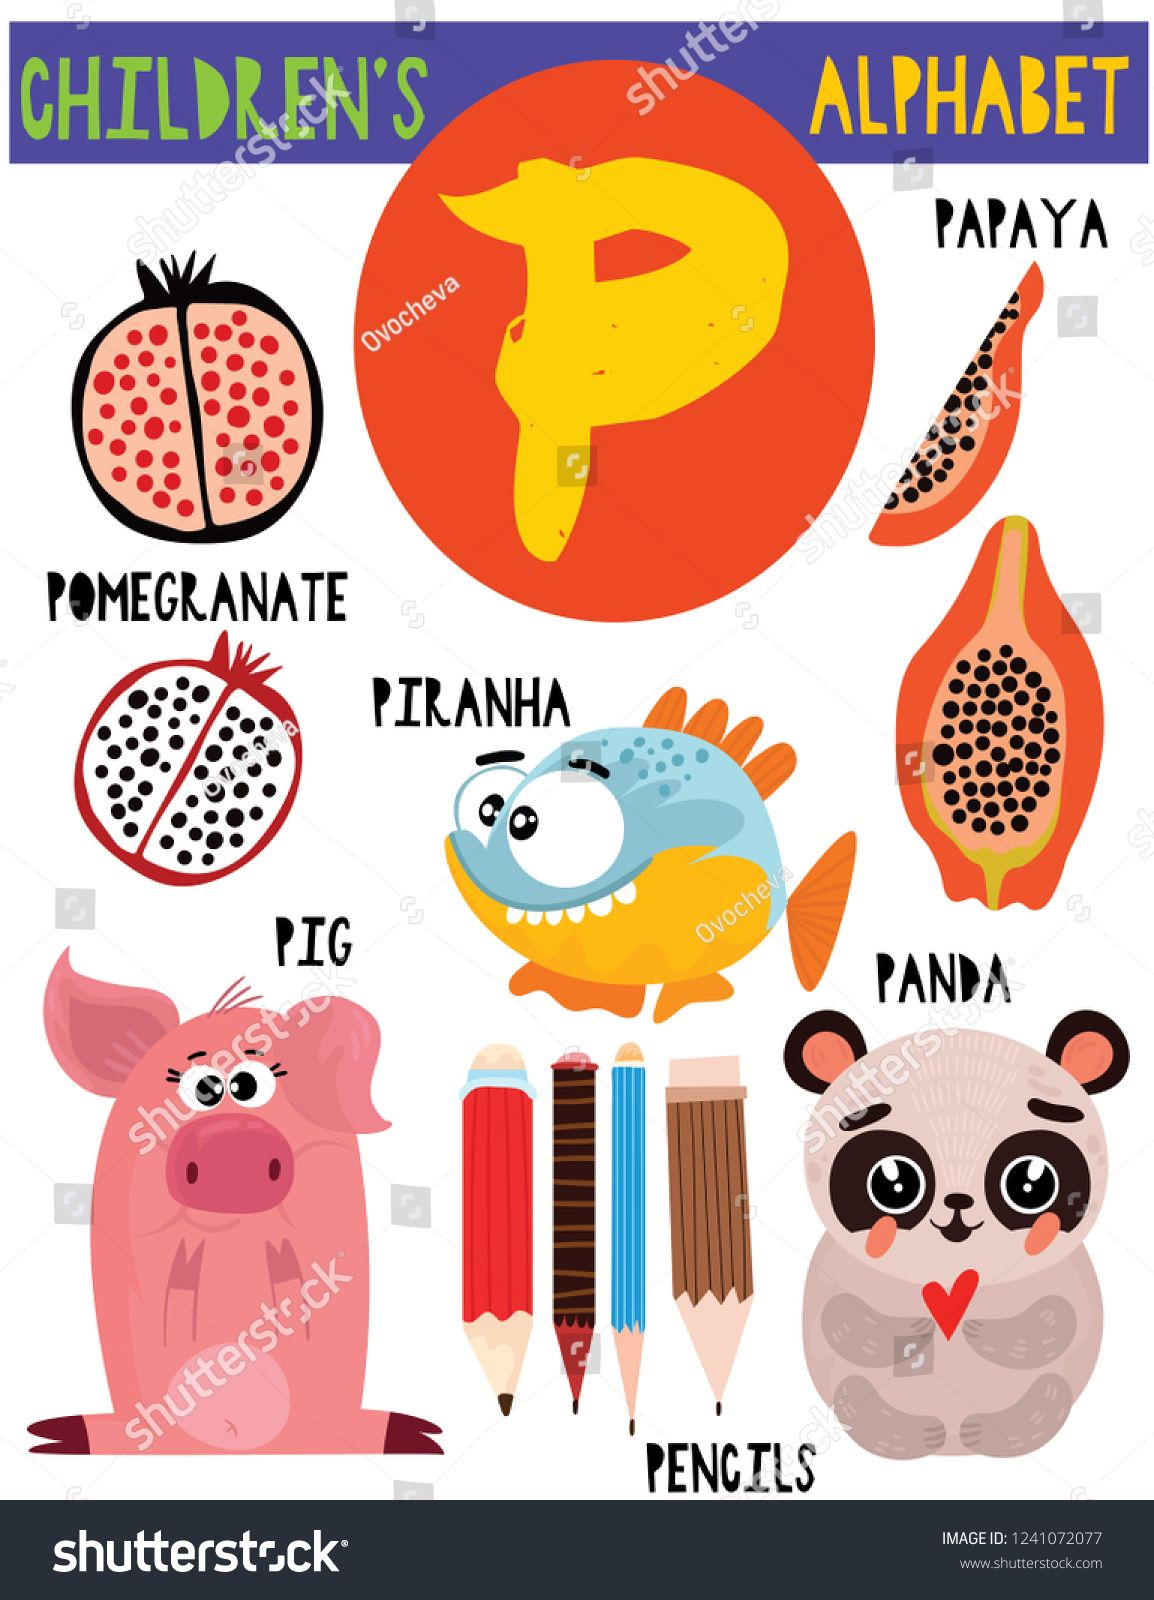 Letter P Cute Children S Alphabet With Adorable Animals And Other Things Poster For Kids Learning English Vocabu Childrens Alphabet Animal Posters Cute Animals